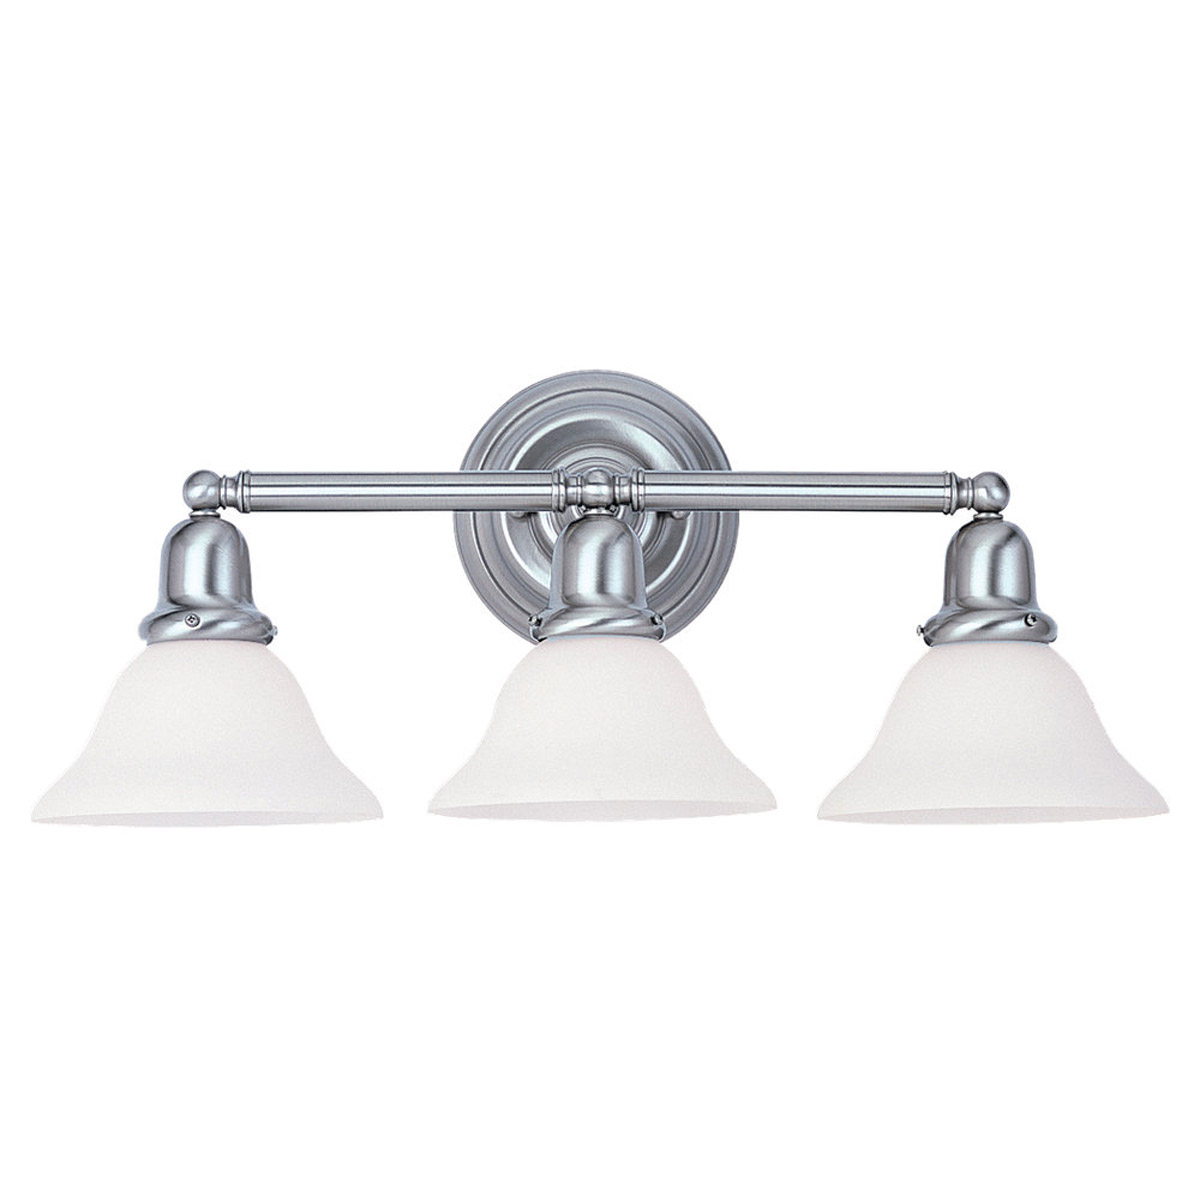 Sea Gull Lighting Sussex 3 Light Bath Vanity in Brushed Nickel 49066BLE-962